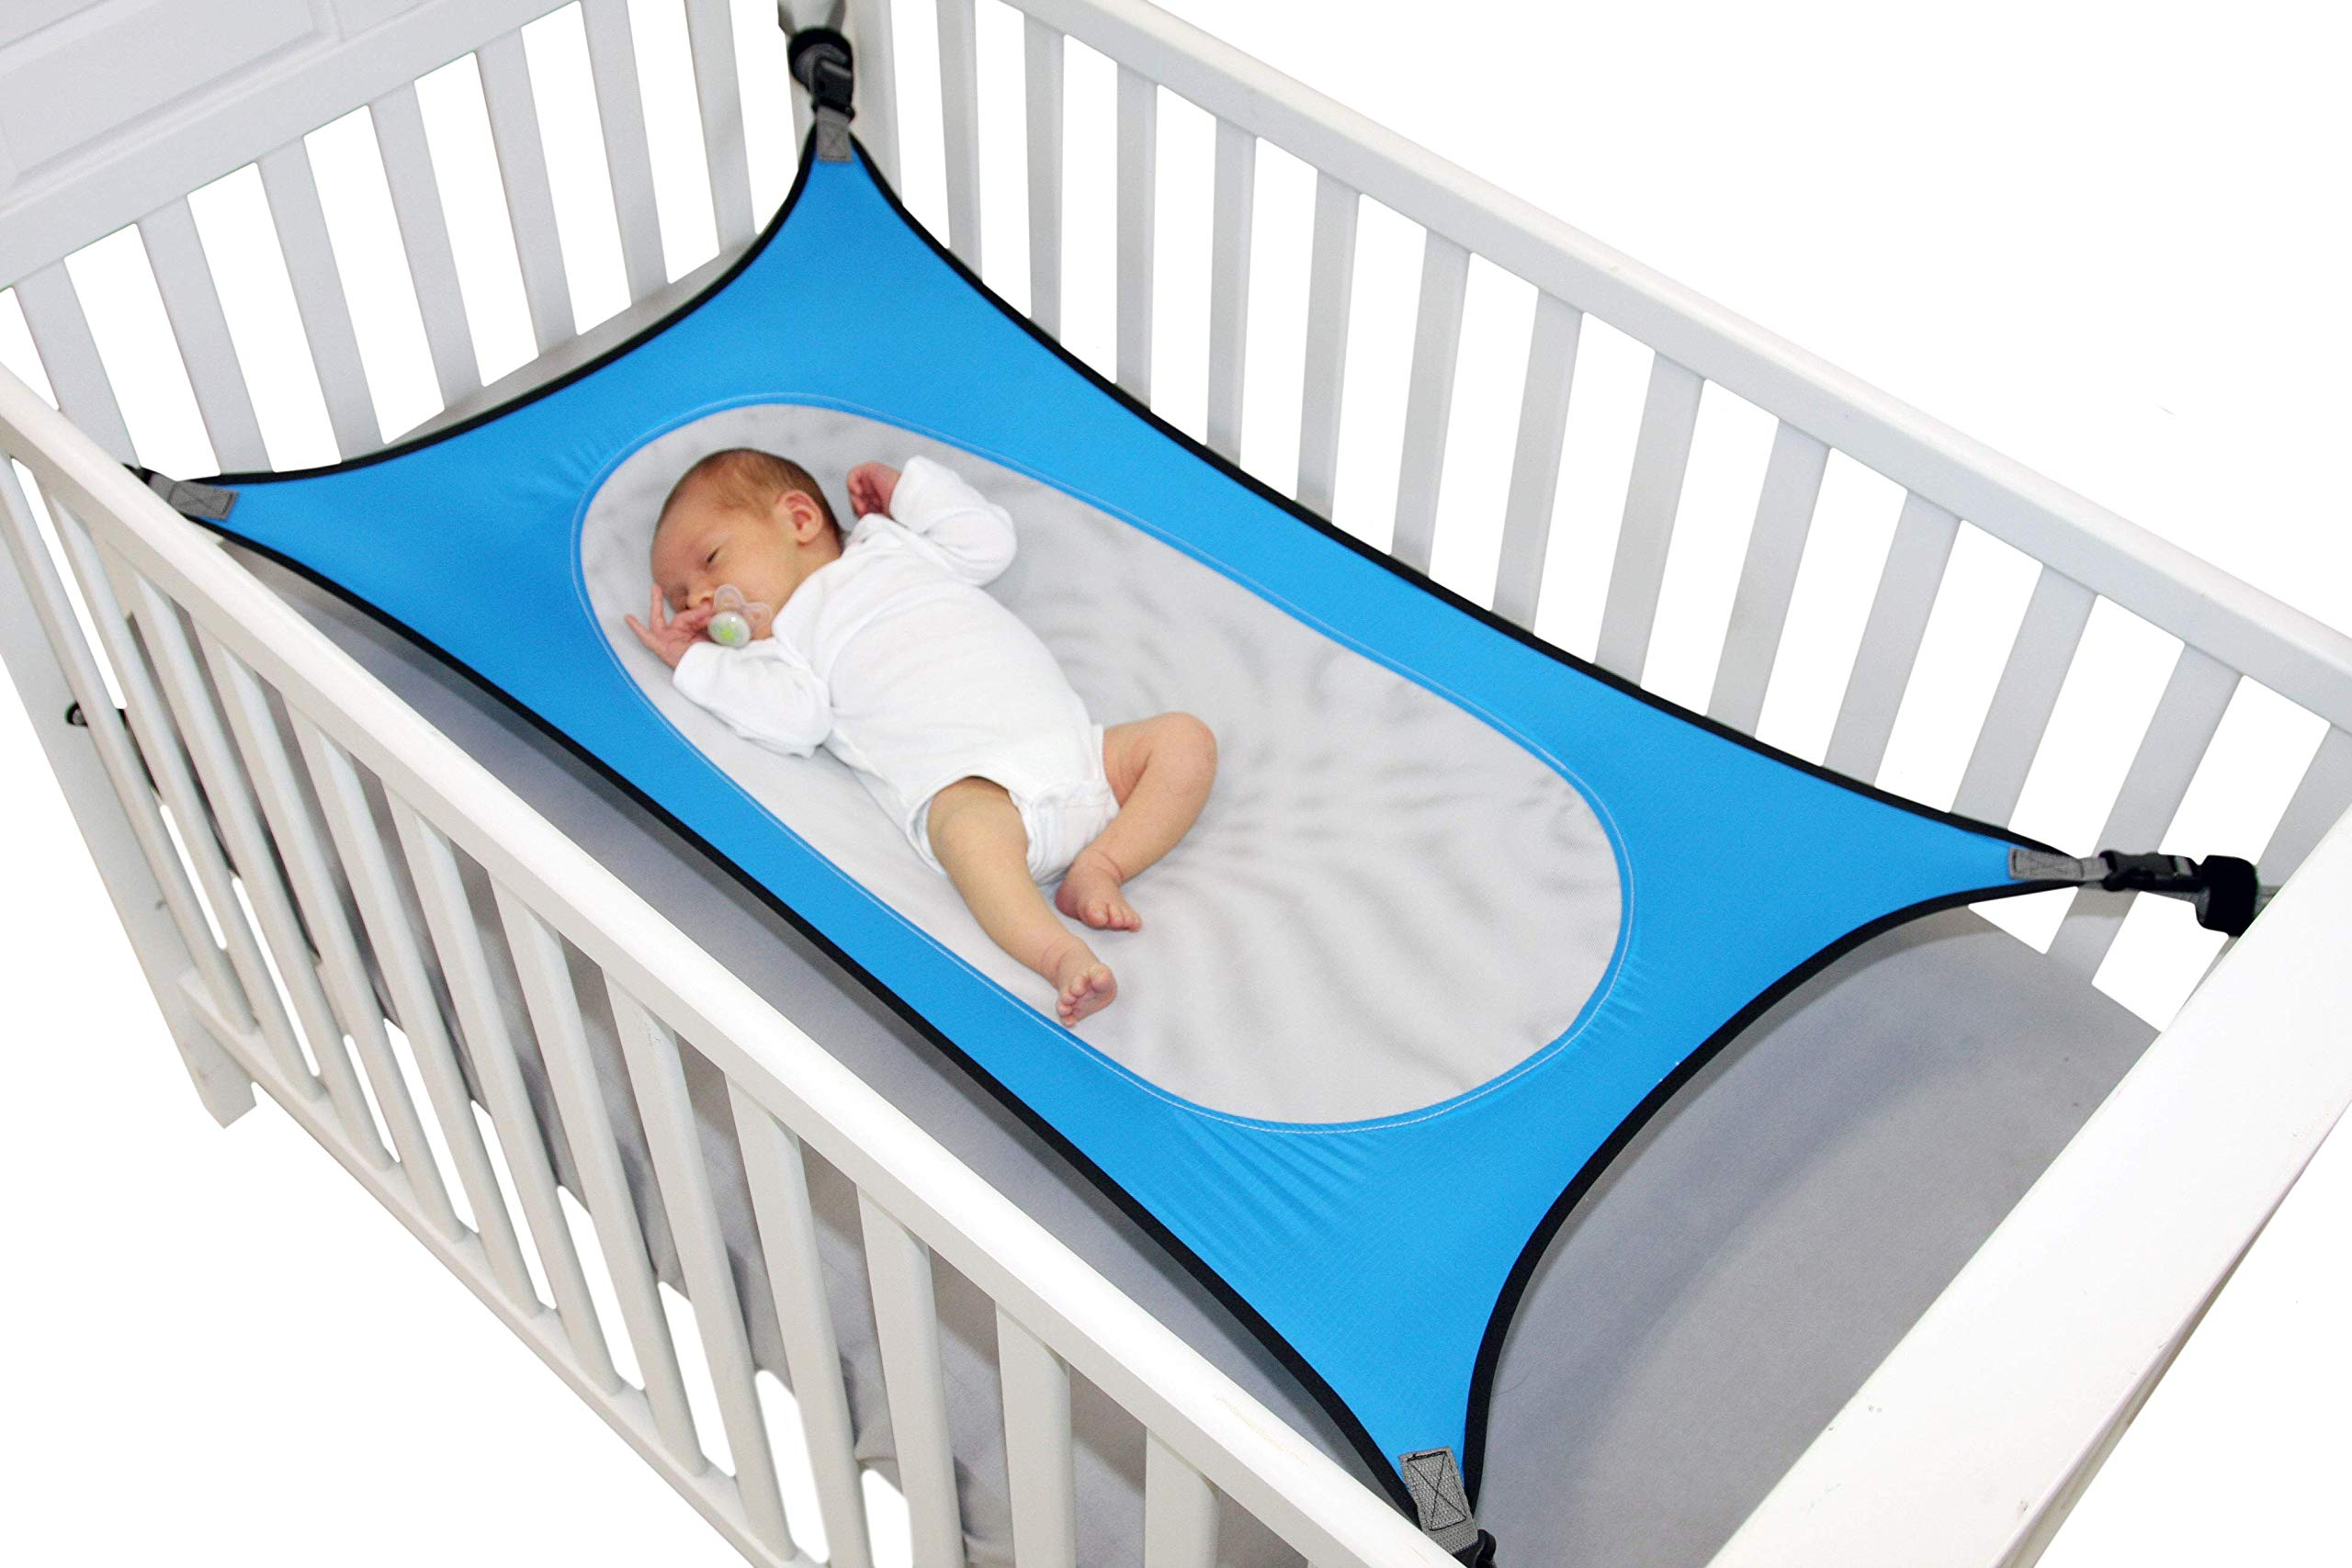 7ae95f97081 Crescent Womb Infant Safety Bed - Breathable   Strong Material That Mimics  The Womb While Reducing The Environmental Risks Associated with Early  Infancy